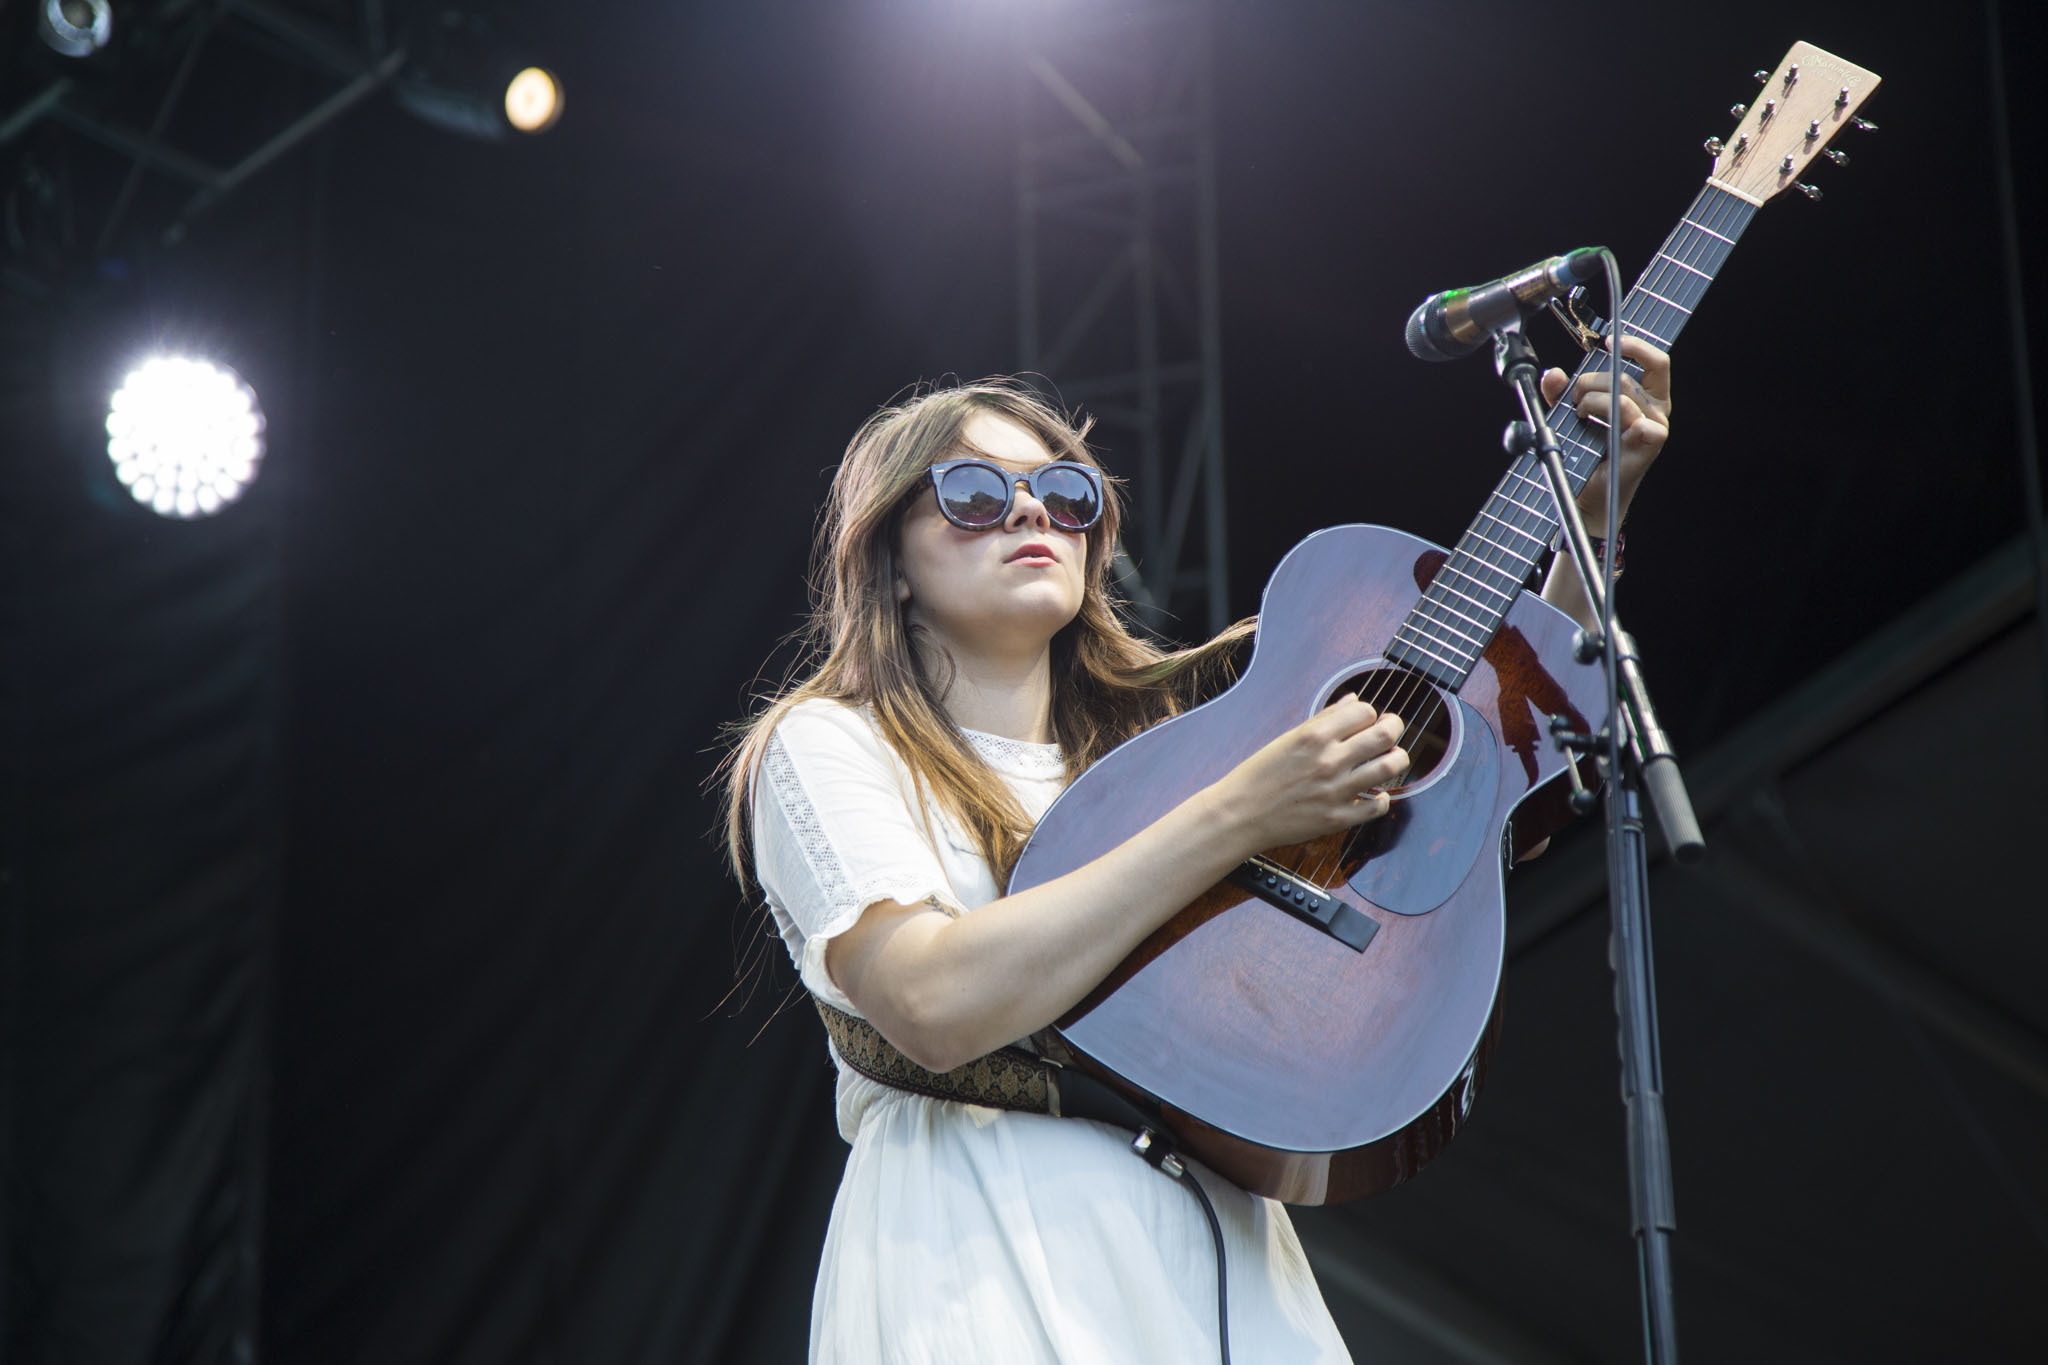 First Aid Kit played to an enthusiastic audience during the first day of Lollapalooza on July 31, 2015.